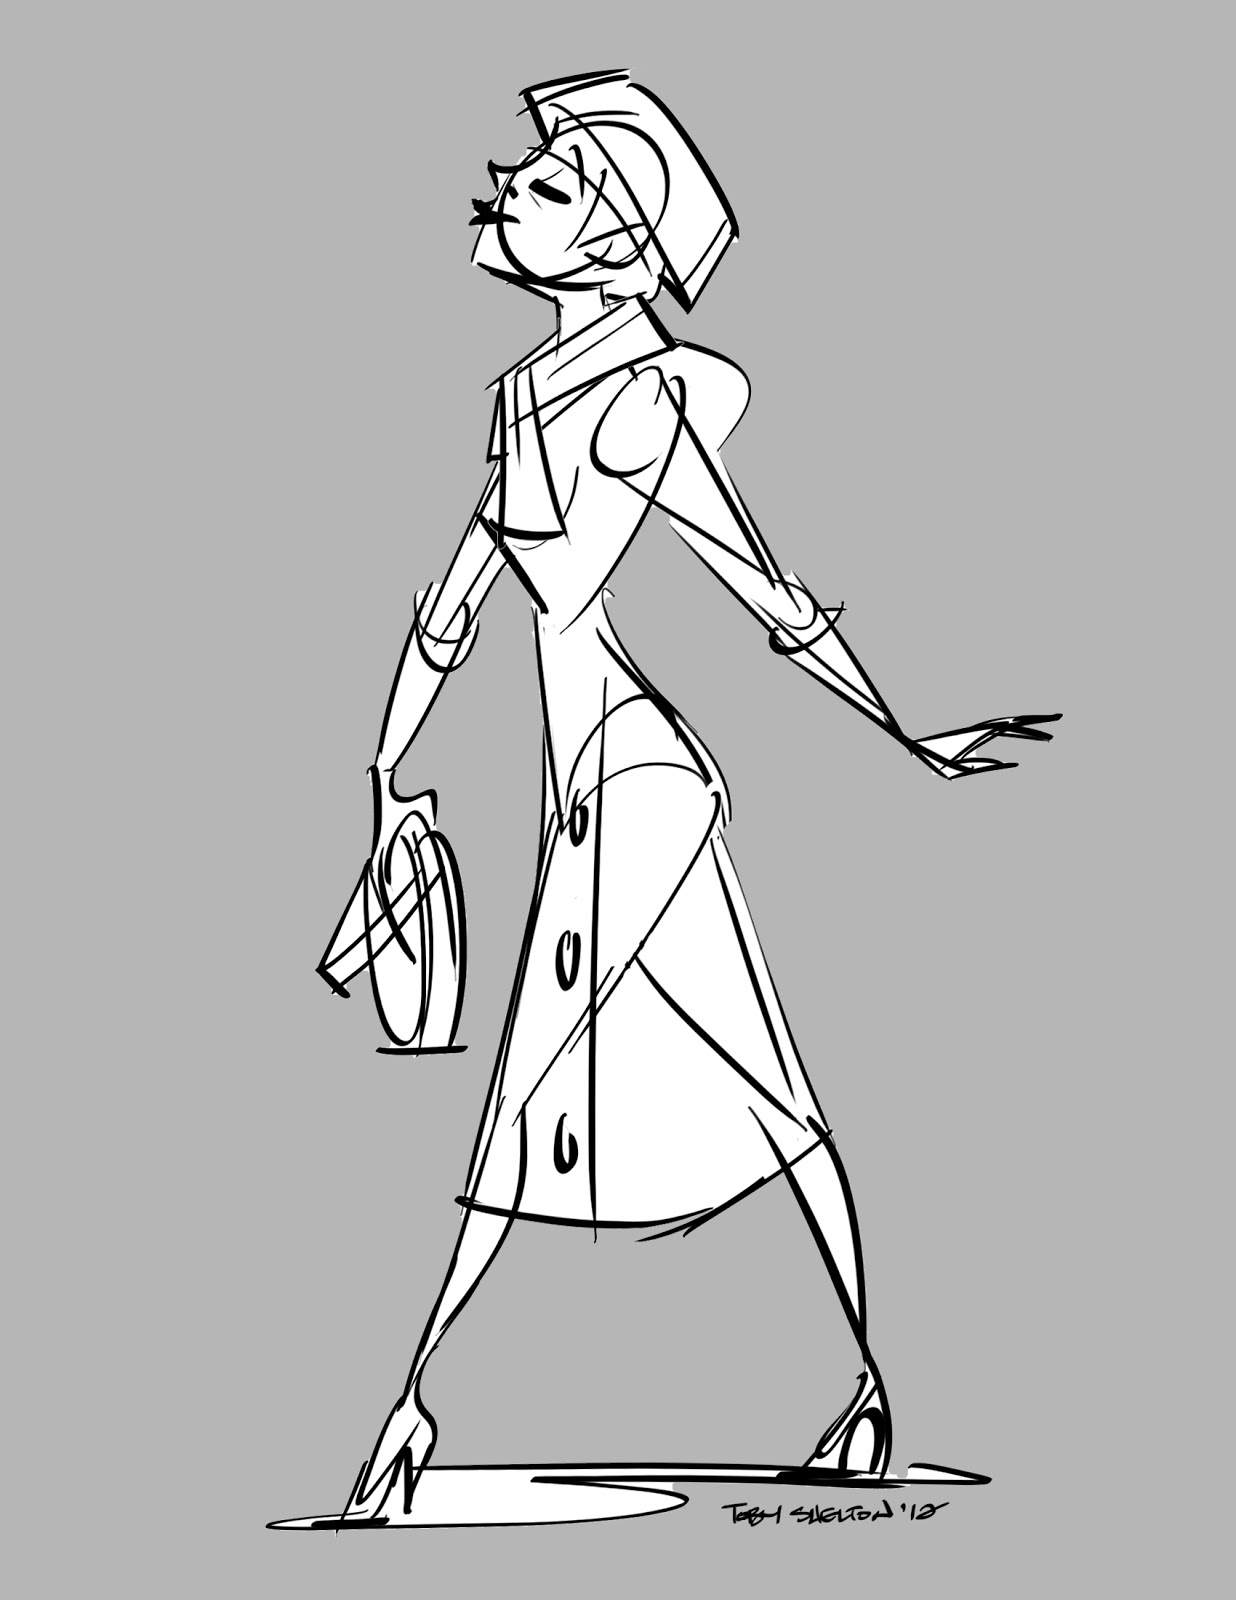 The Animation Woodpile: Park Ave. Woman Walking